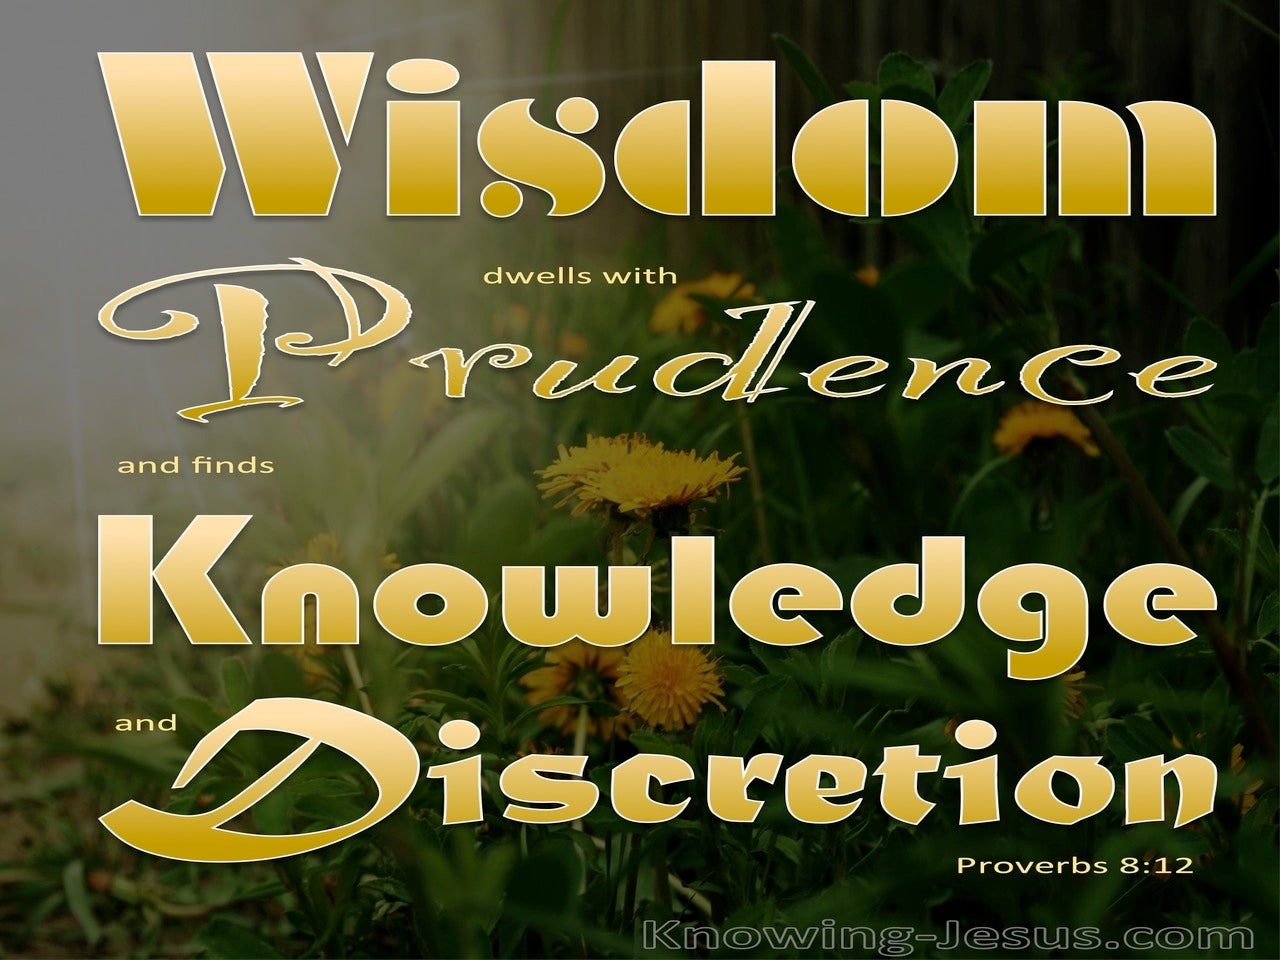 Proverbs 8:12 Wisdom Dwells With Prudence (gold)